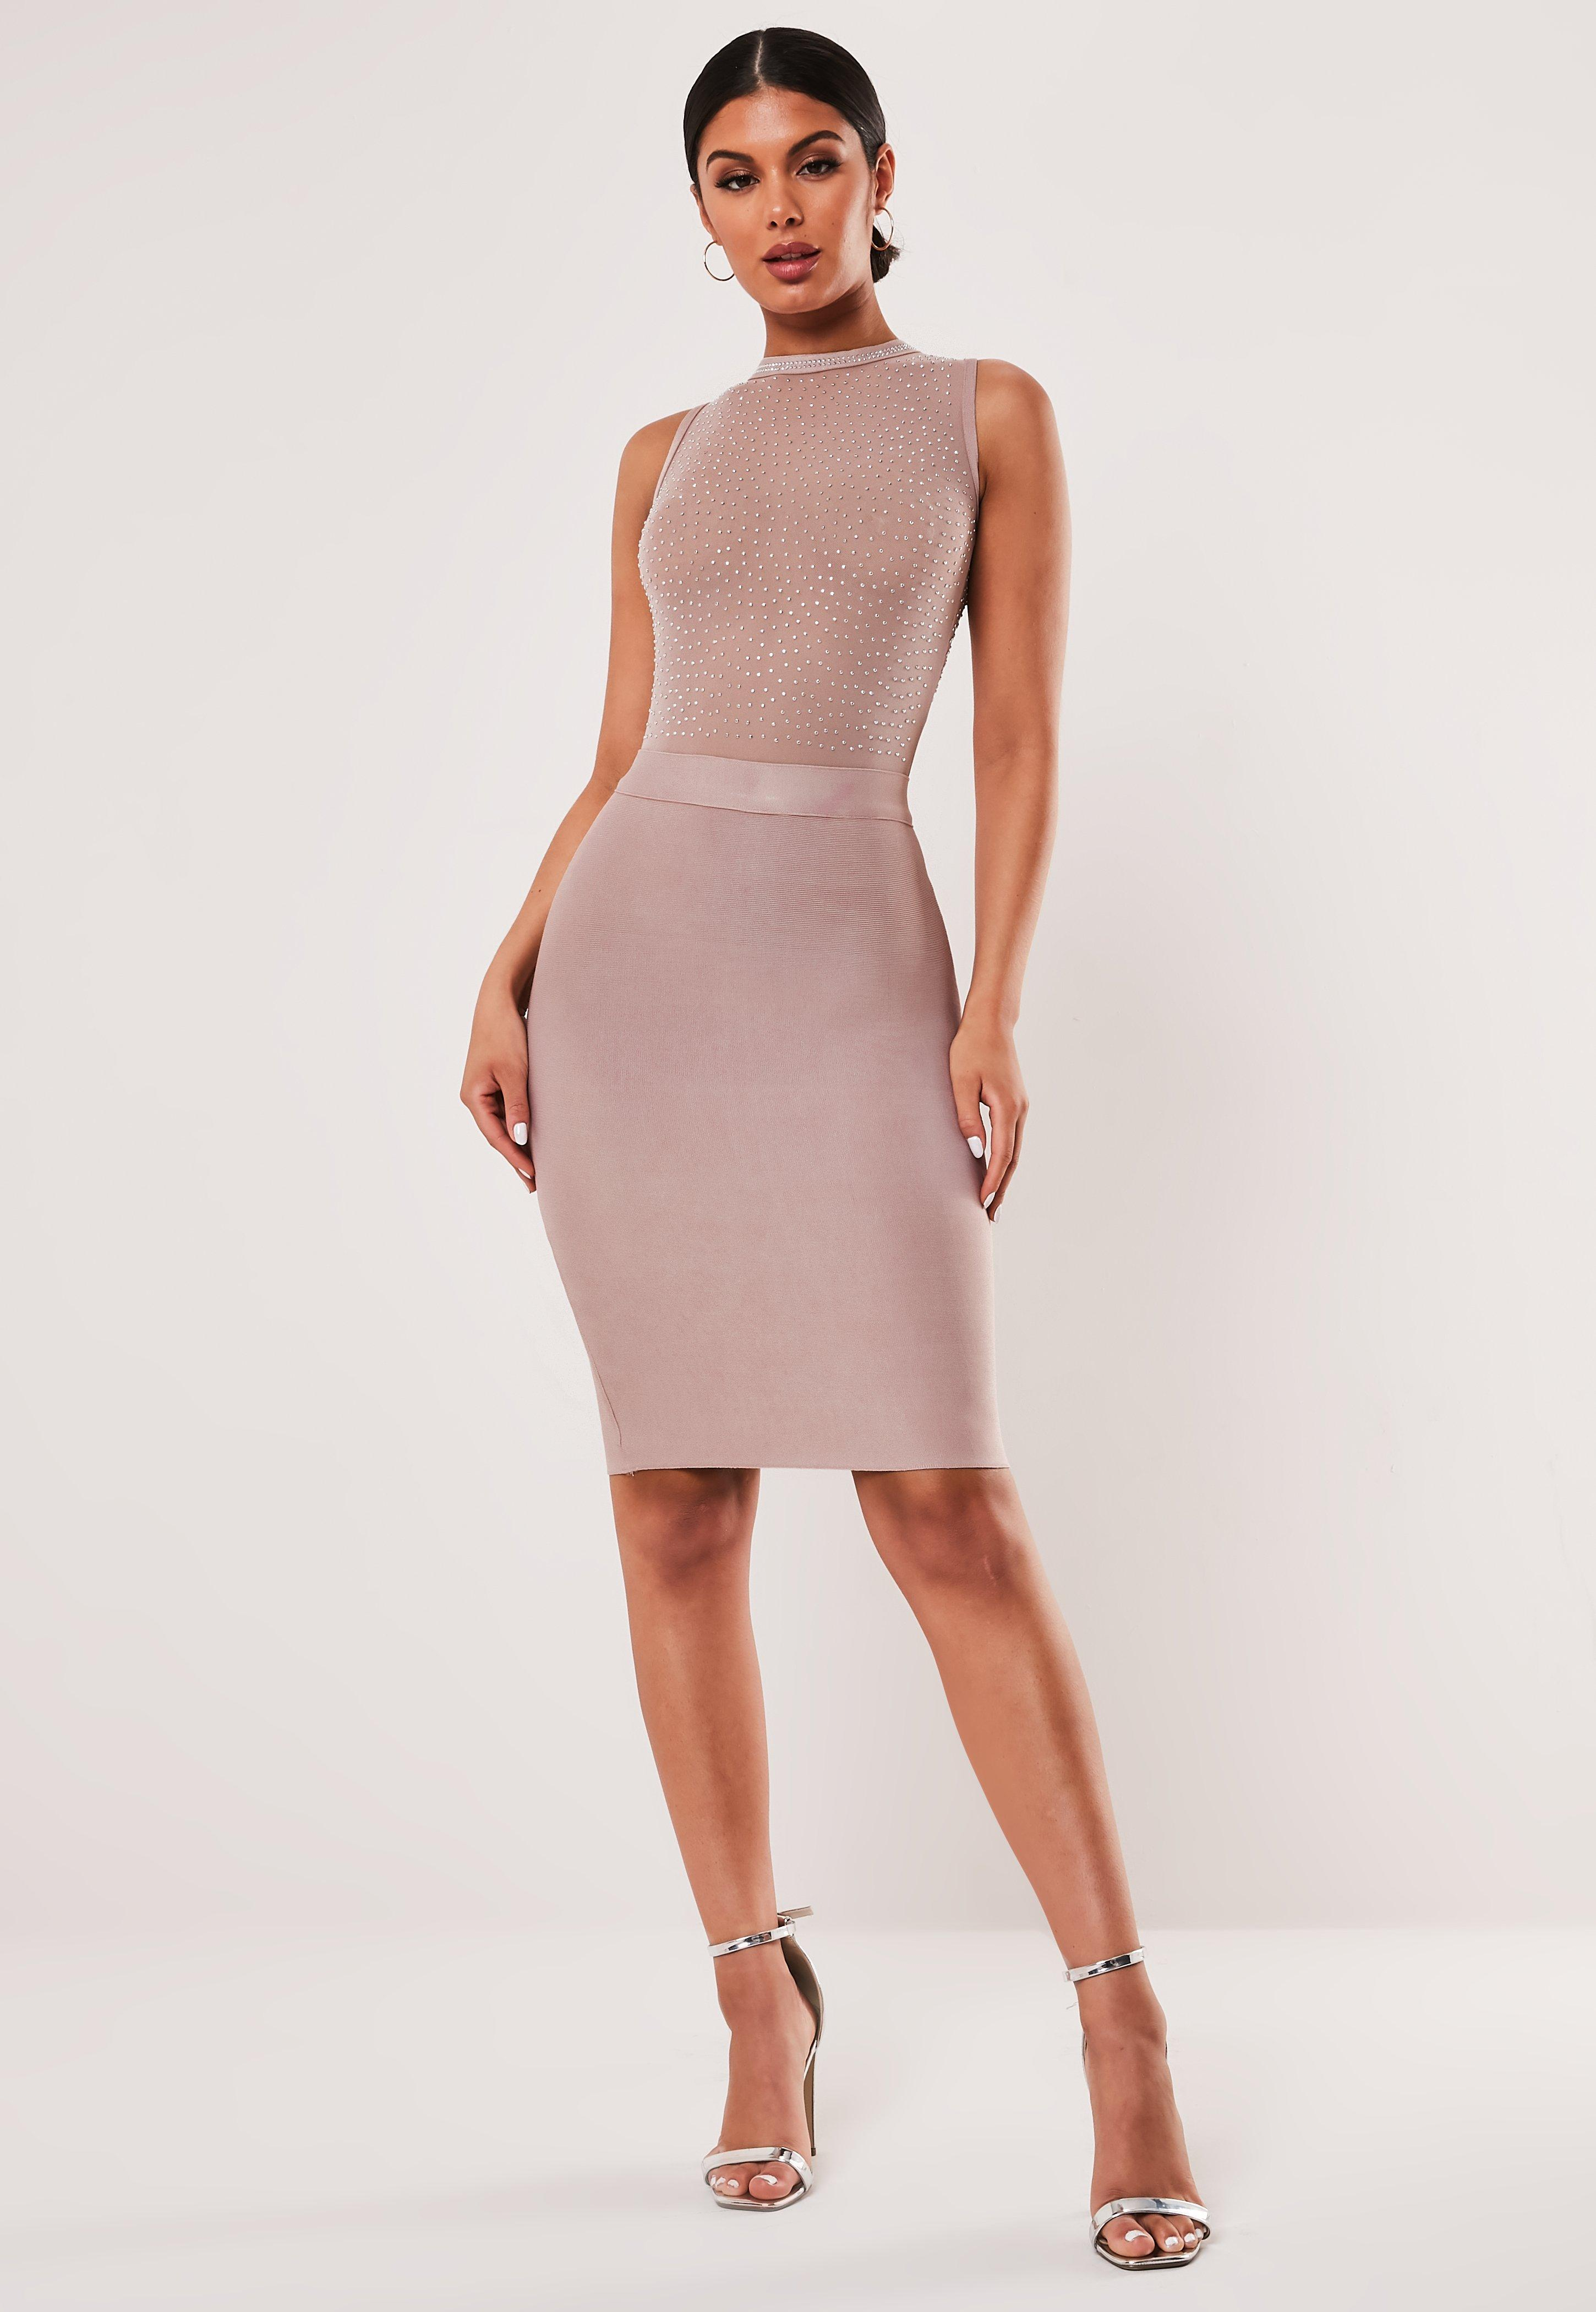 7e30c6f036 Party Outfits | Party Wear & Going Out Clothes - Missguided